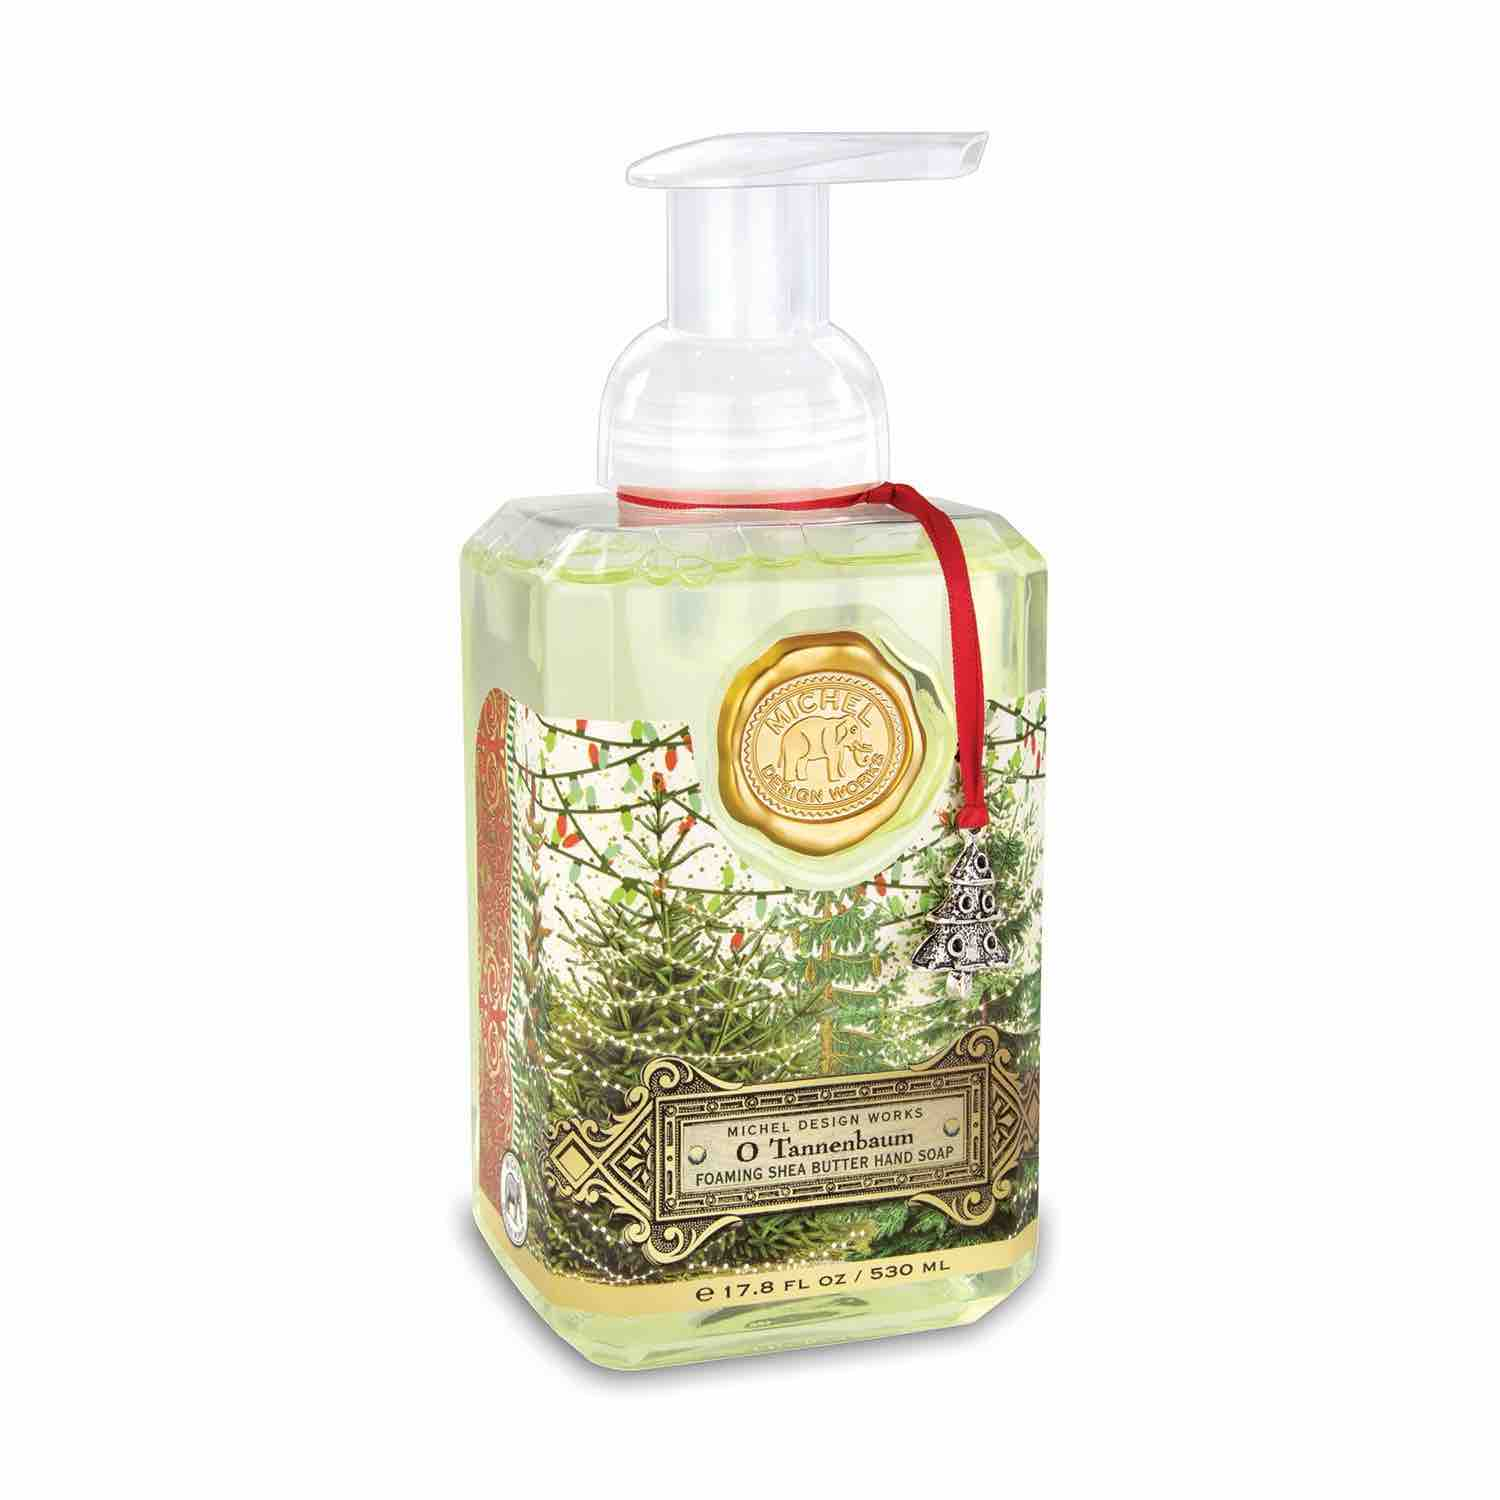 Michel Design Works Foaming Soap | O Tannenbaum